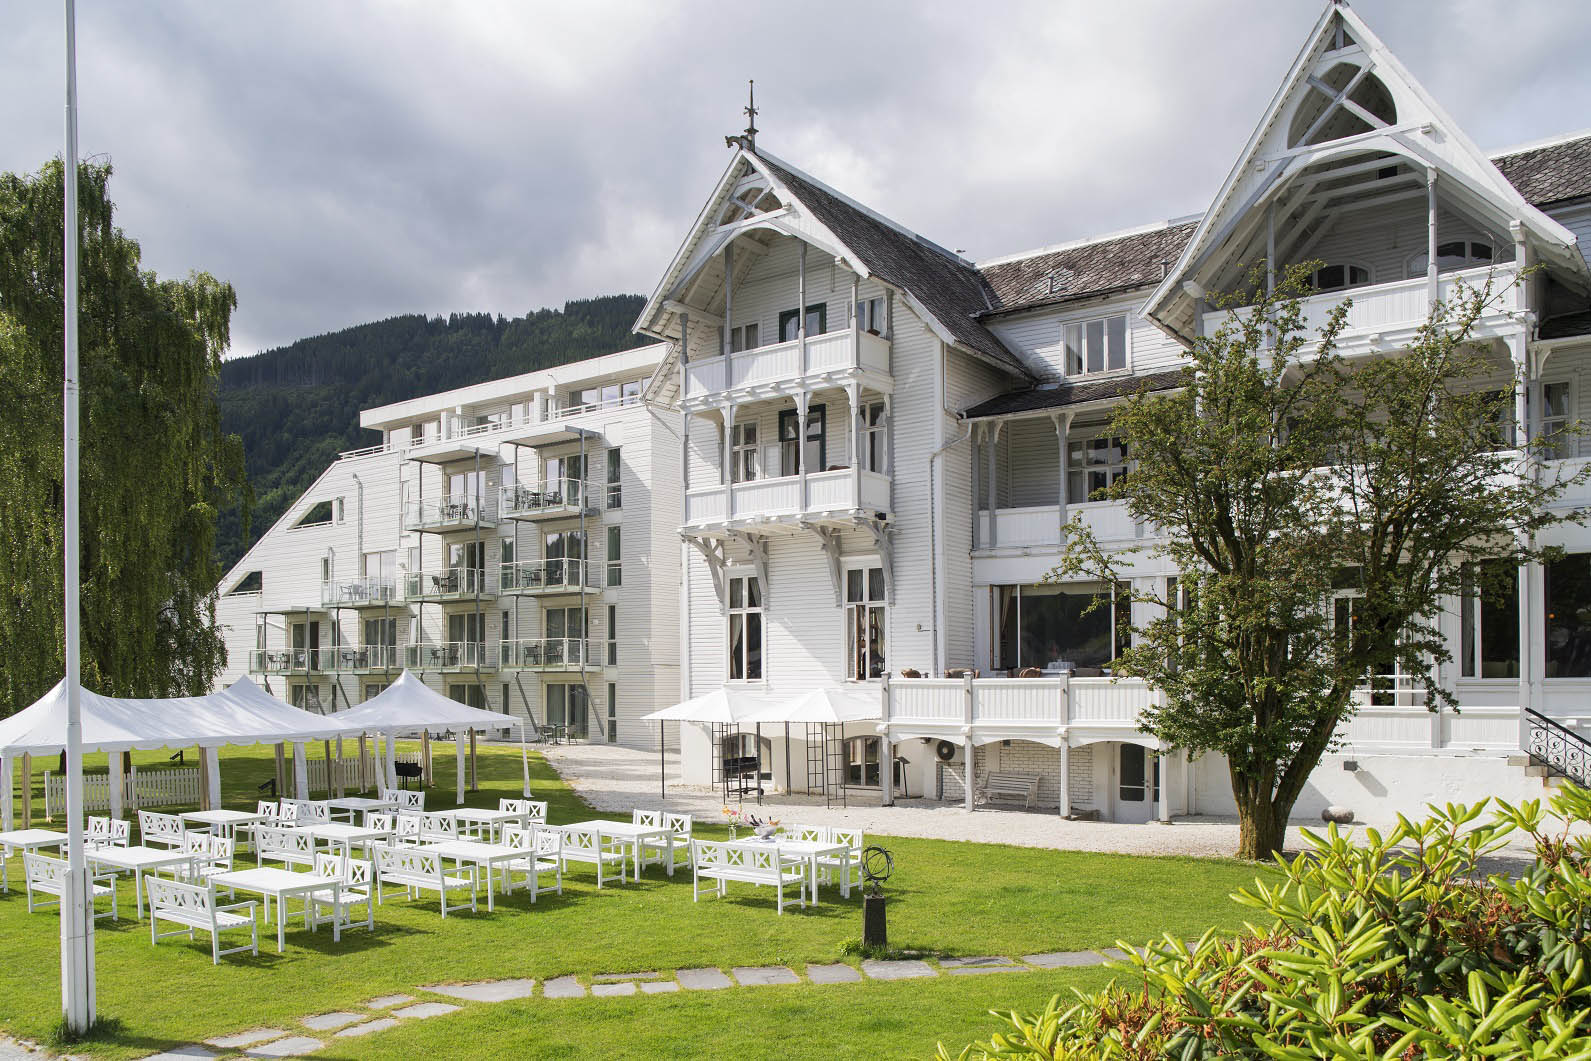 Thon Hotel Sandven: Welcome to a charming hotel overlooking the idyllic Hardangerfjord